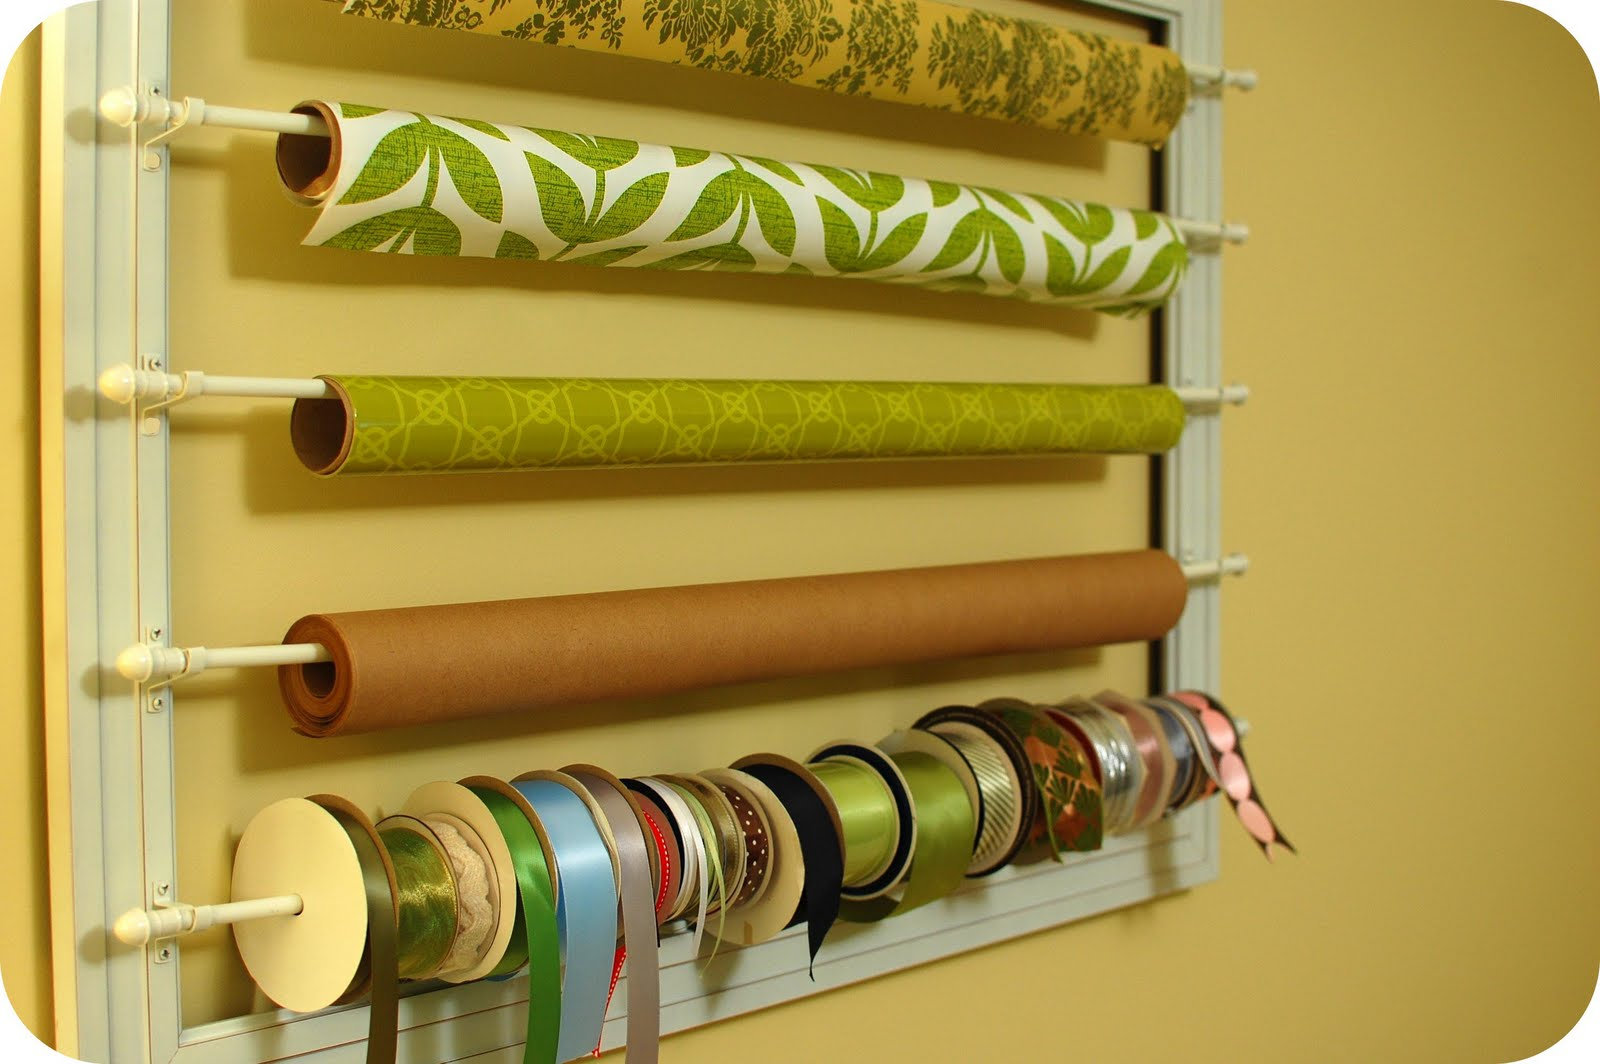 wrapping paper rack Blogger jen jones shares her tips for creating a high-impact wall with patterned wrapping paper this $3 wallpaper hack is the stuff of diy dreams sean.